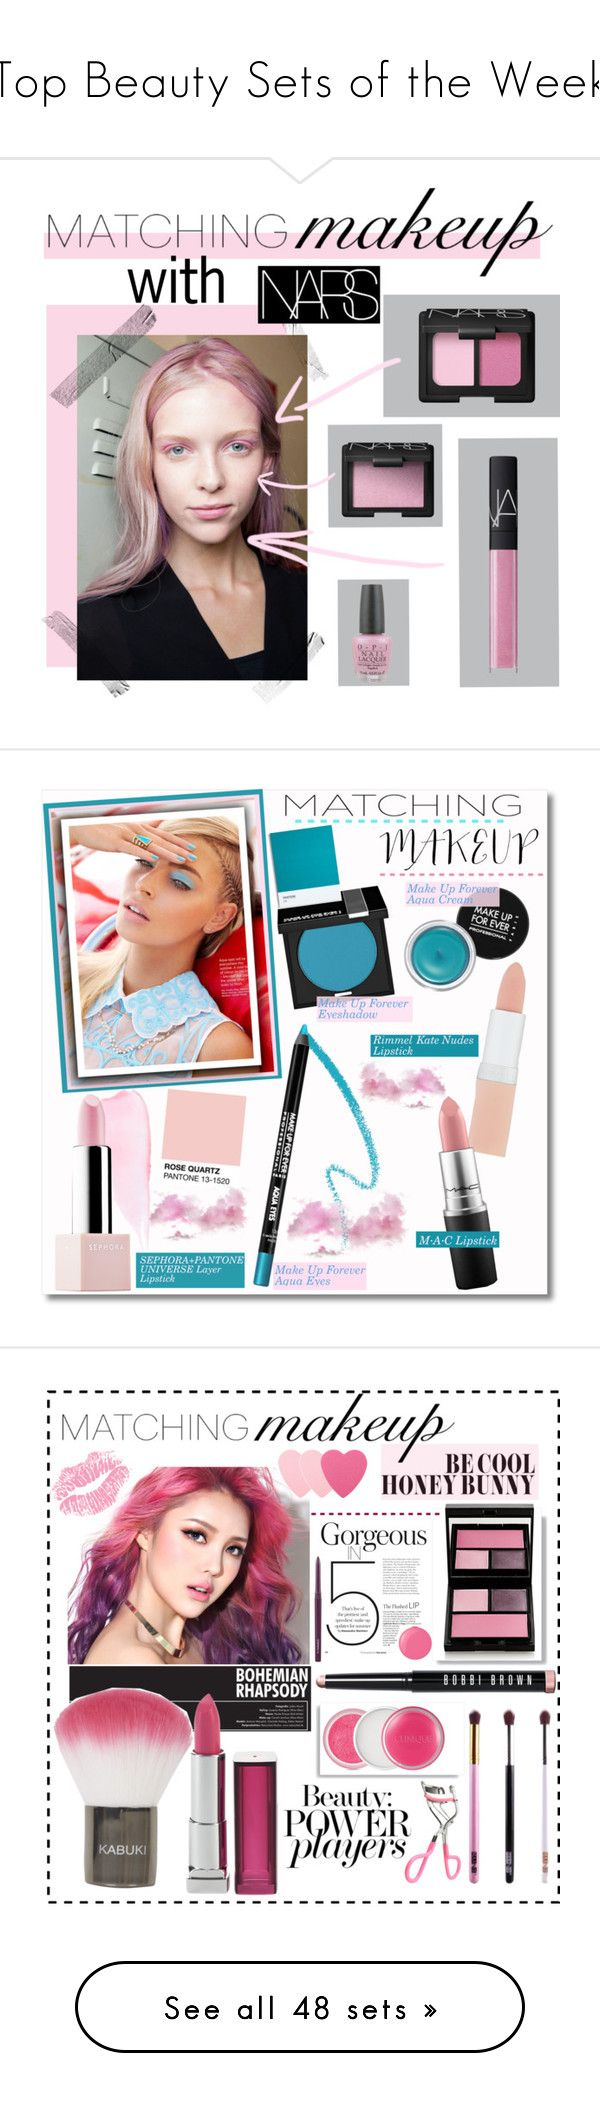 """""""Top Beauty Sets of the Week"""" by polyvore ❤ liked on Polyvore featuring beauty, OPI, NARS Cosmetics, contestentry, matchingmakeup, VaVa, MAKE UP FOR EVER, Sephora Collection, Rimmel and MAC Cosmetics"""